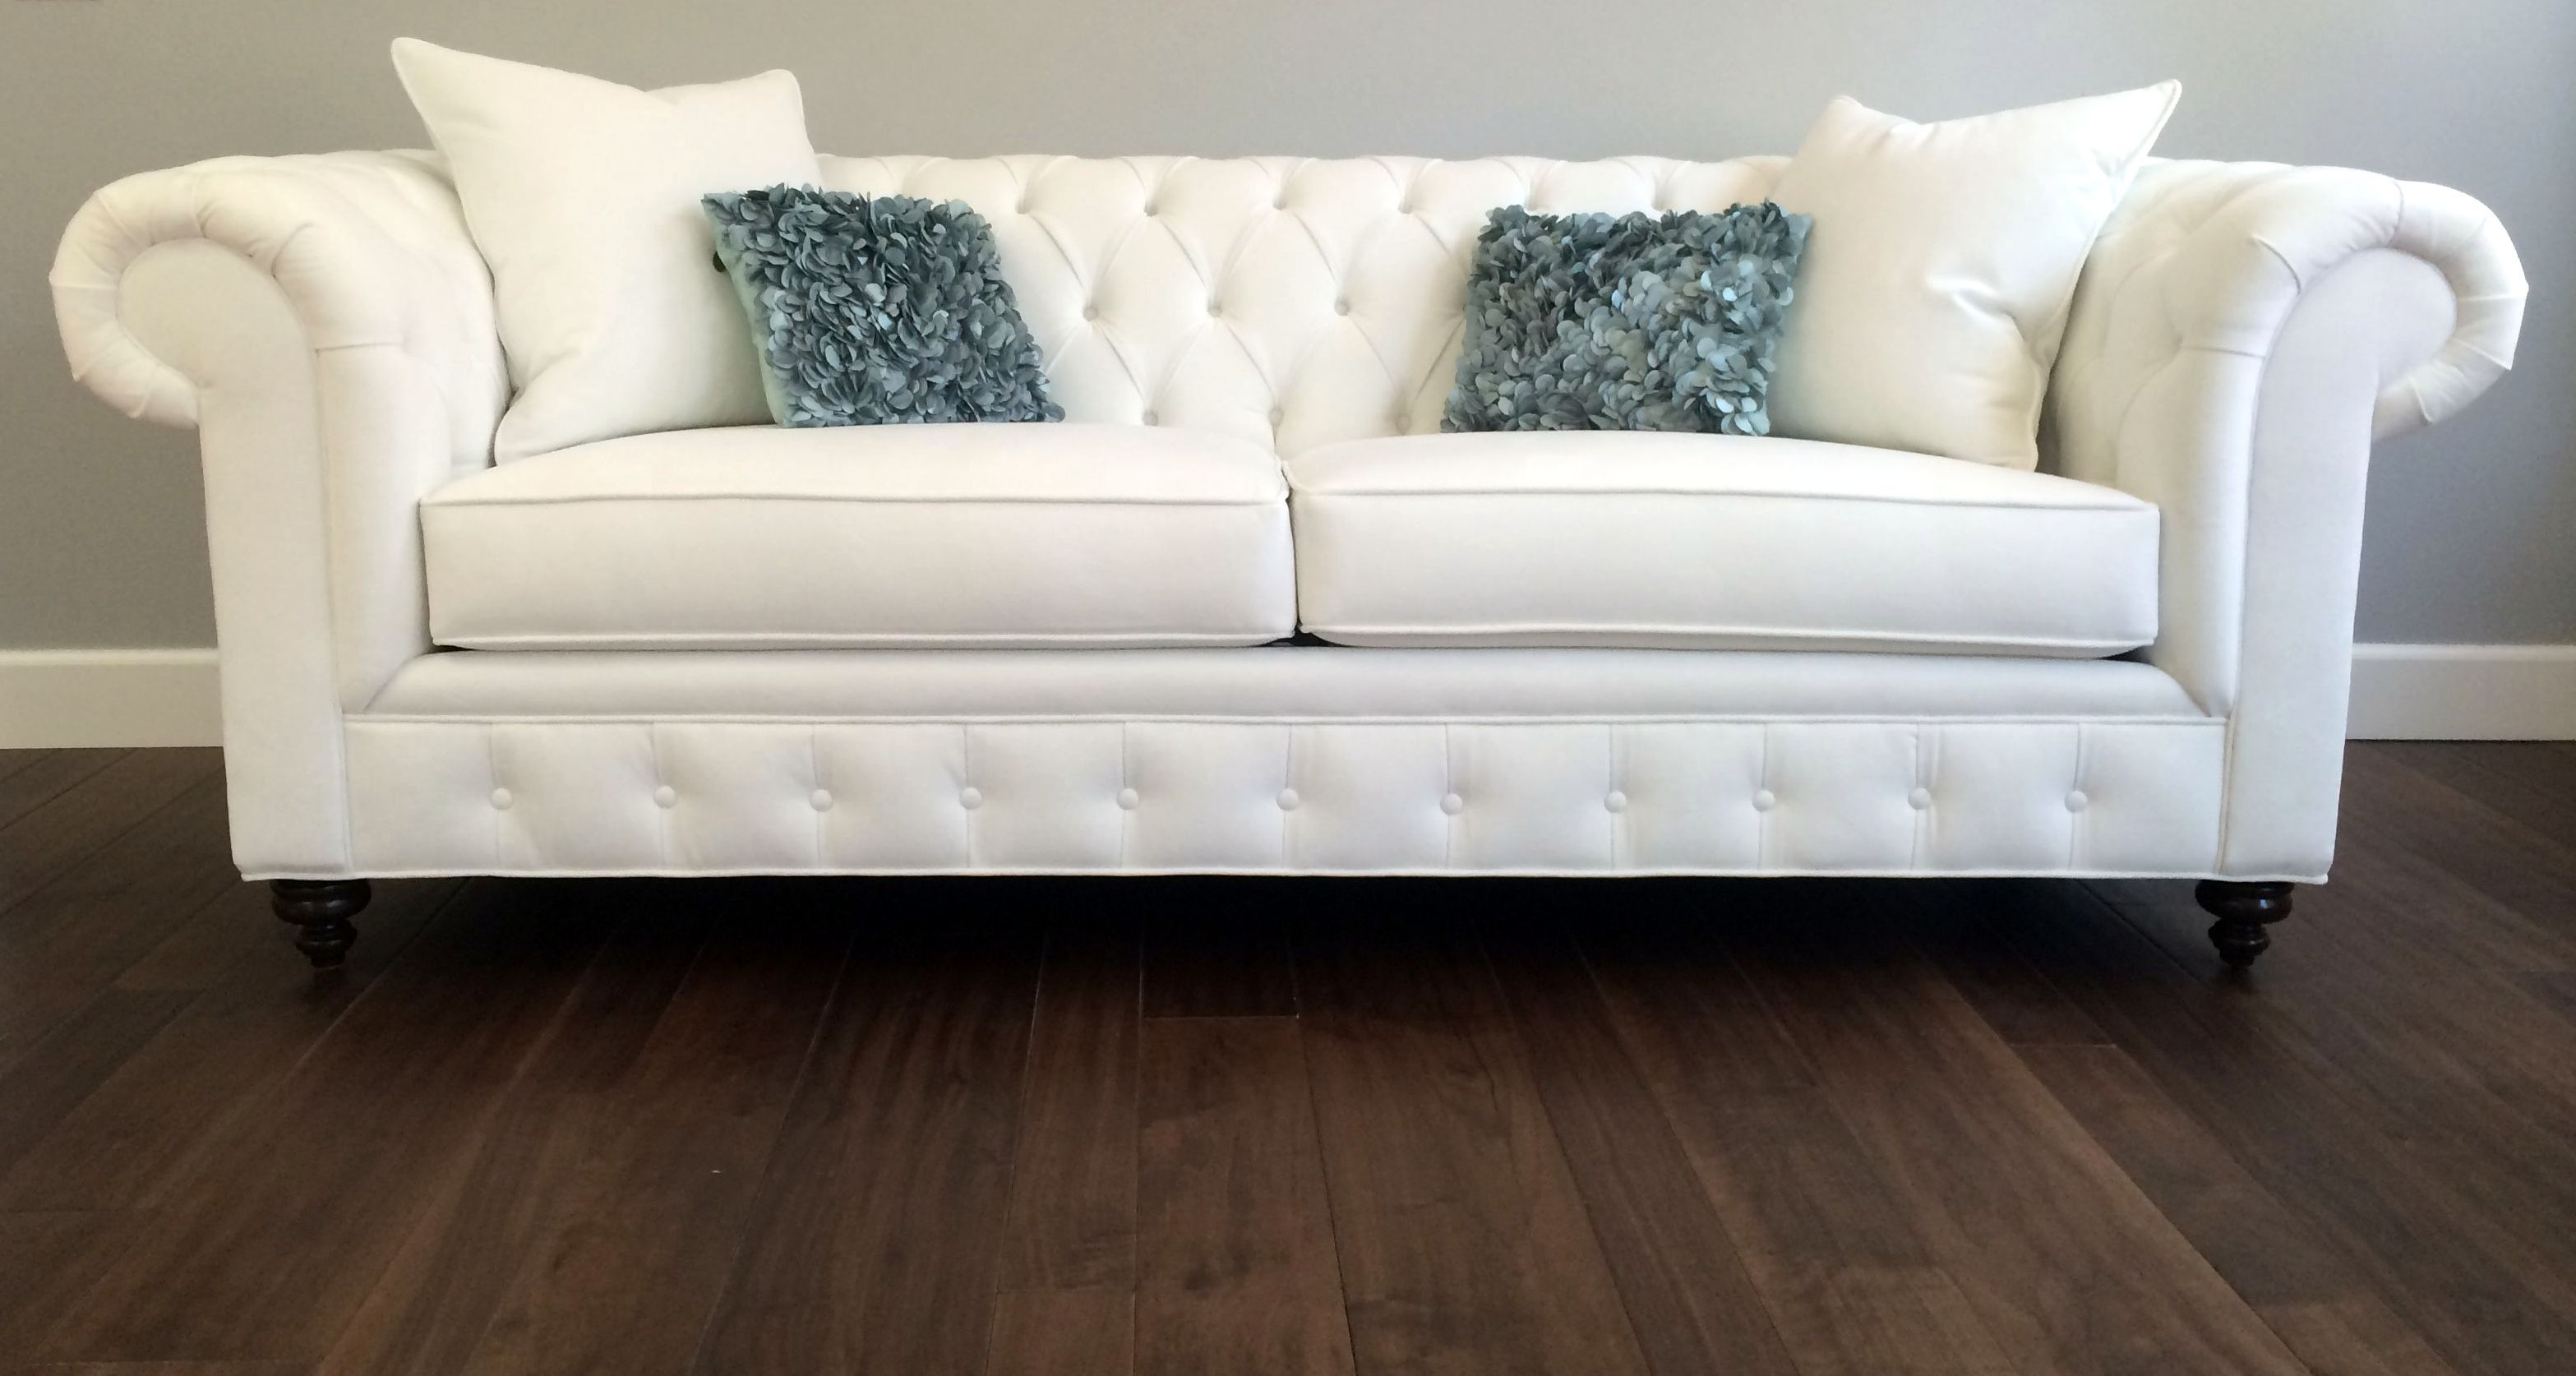 Beau Custom CHESTERFIELD Sofa Or Sectional. Leather Or Fabric. Ships Nationwide.